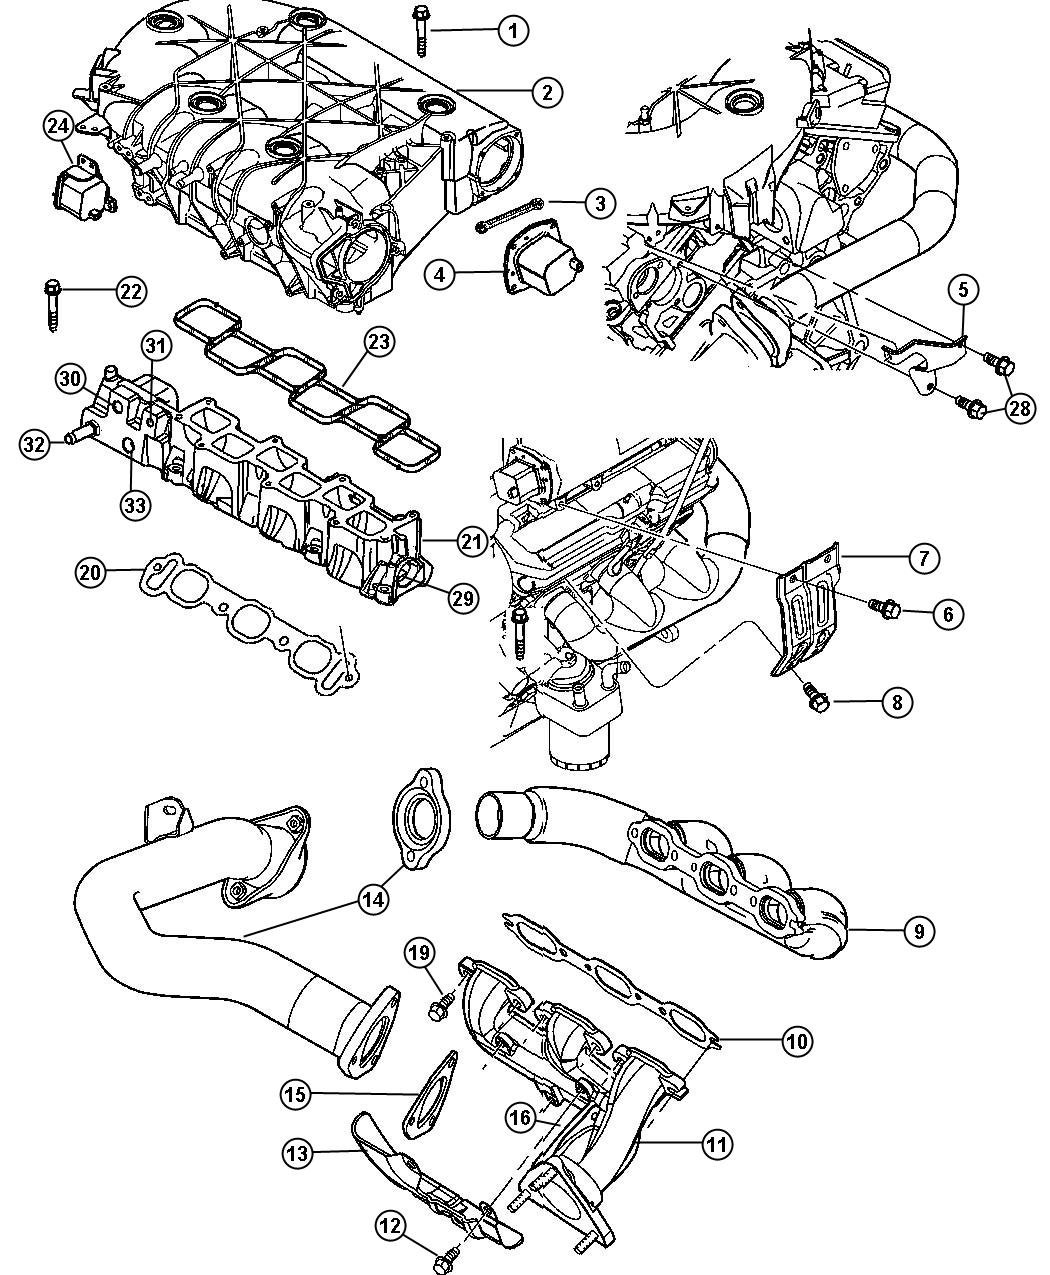 Chrysler Pacifica Manifold Intake And Exhaust 3 5l Engine